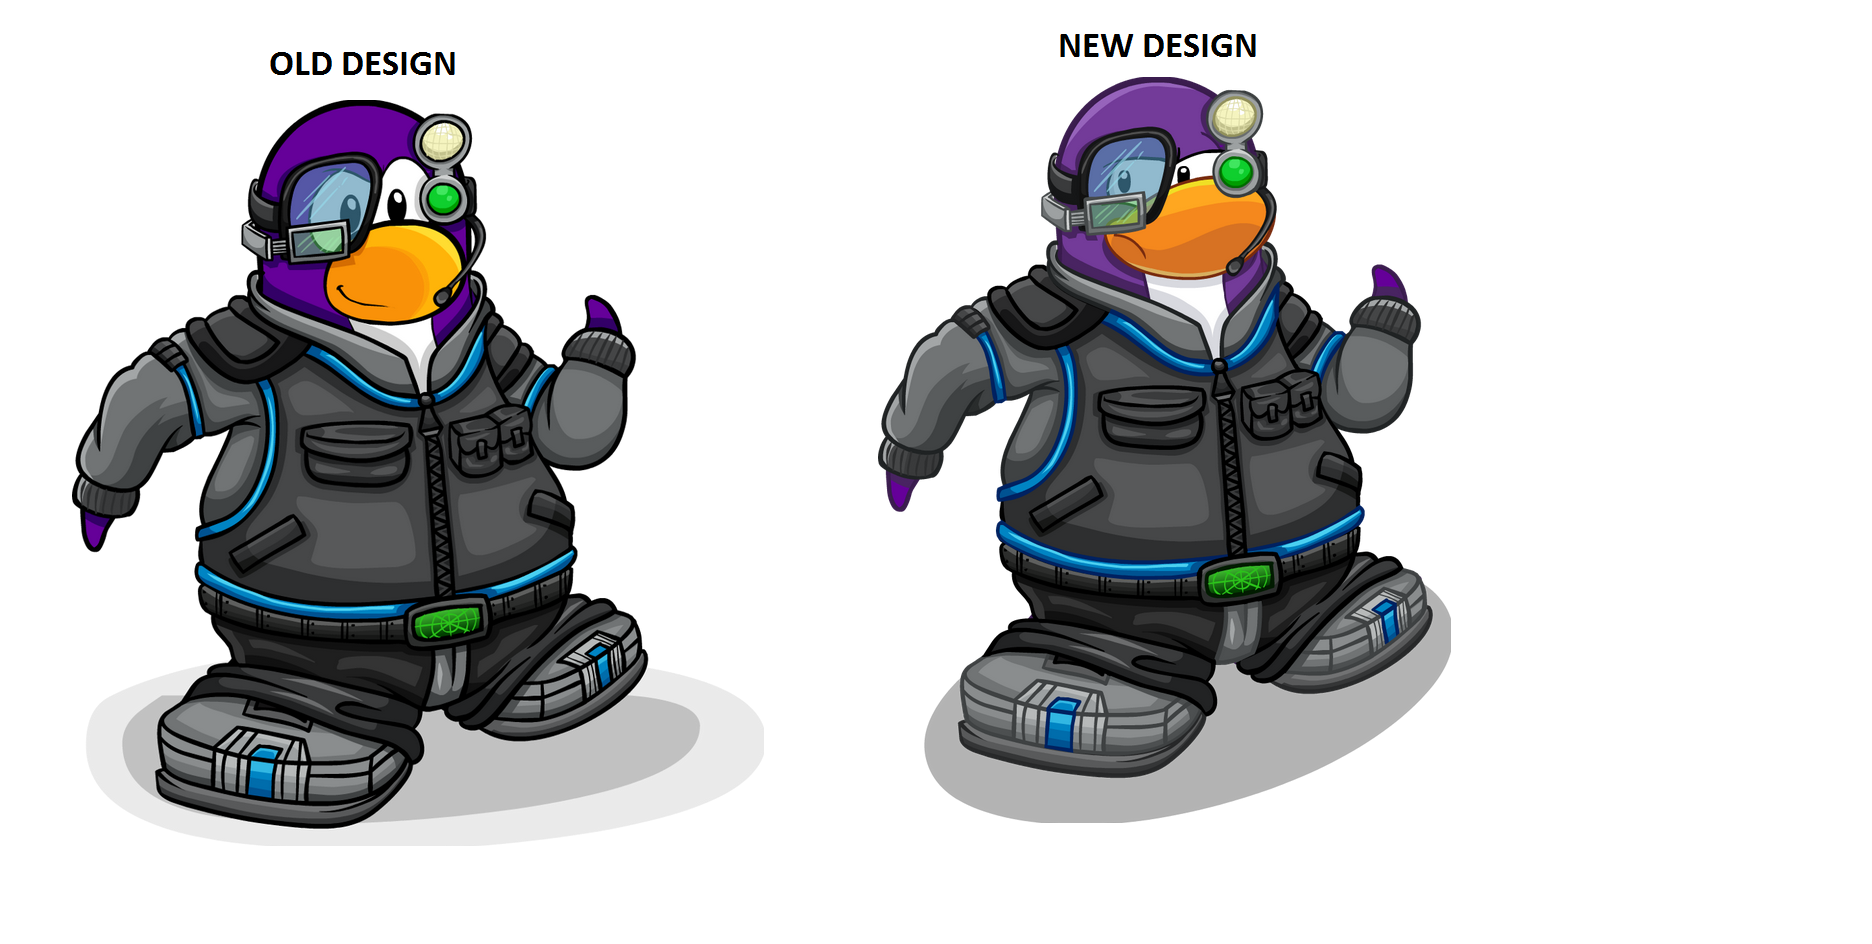 Image - Penguin Design.png | Club Penguin Wiki | FANDOM powered by Wikia